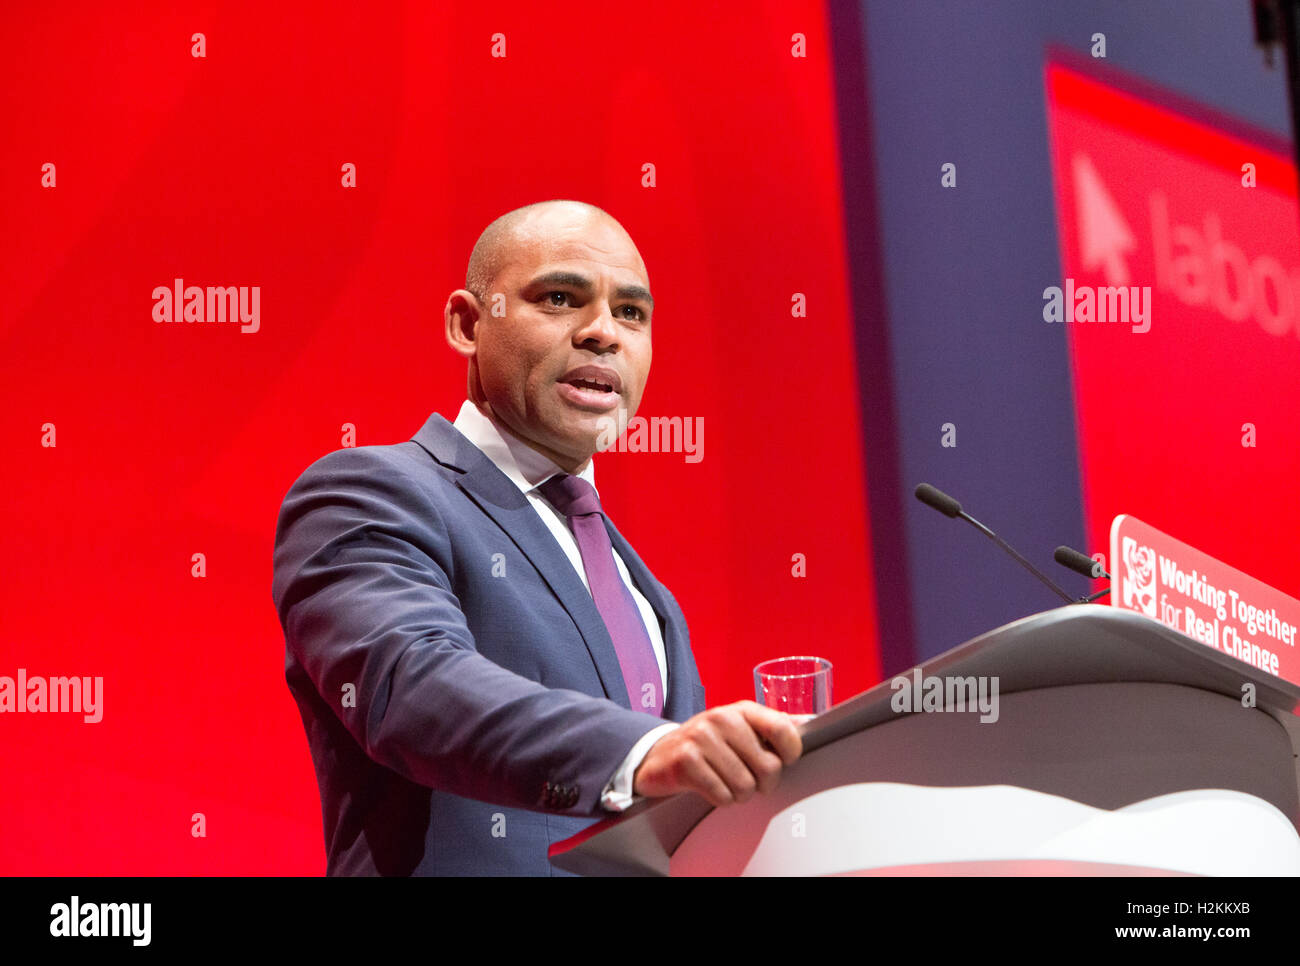 Marvin Rees,Mayor of Bristol and a Labour politician,speaking at the Labour party conference in Liverpool 2016 - Stock Image